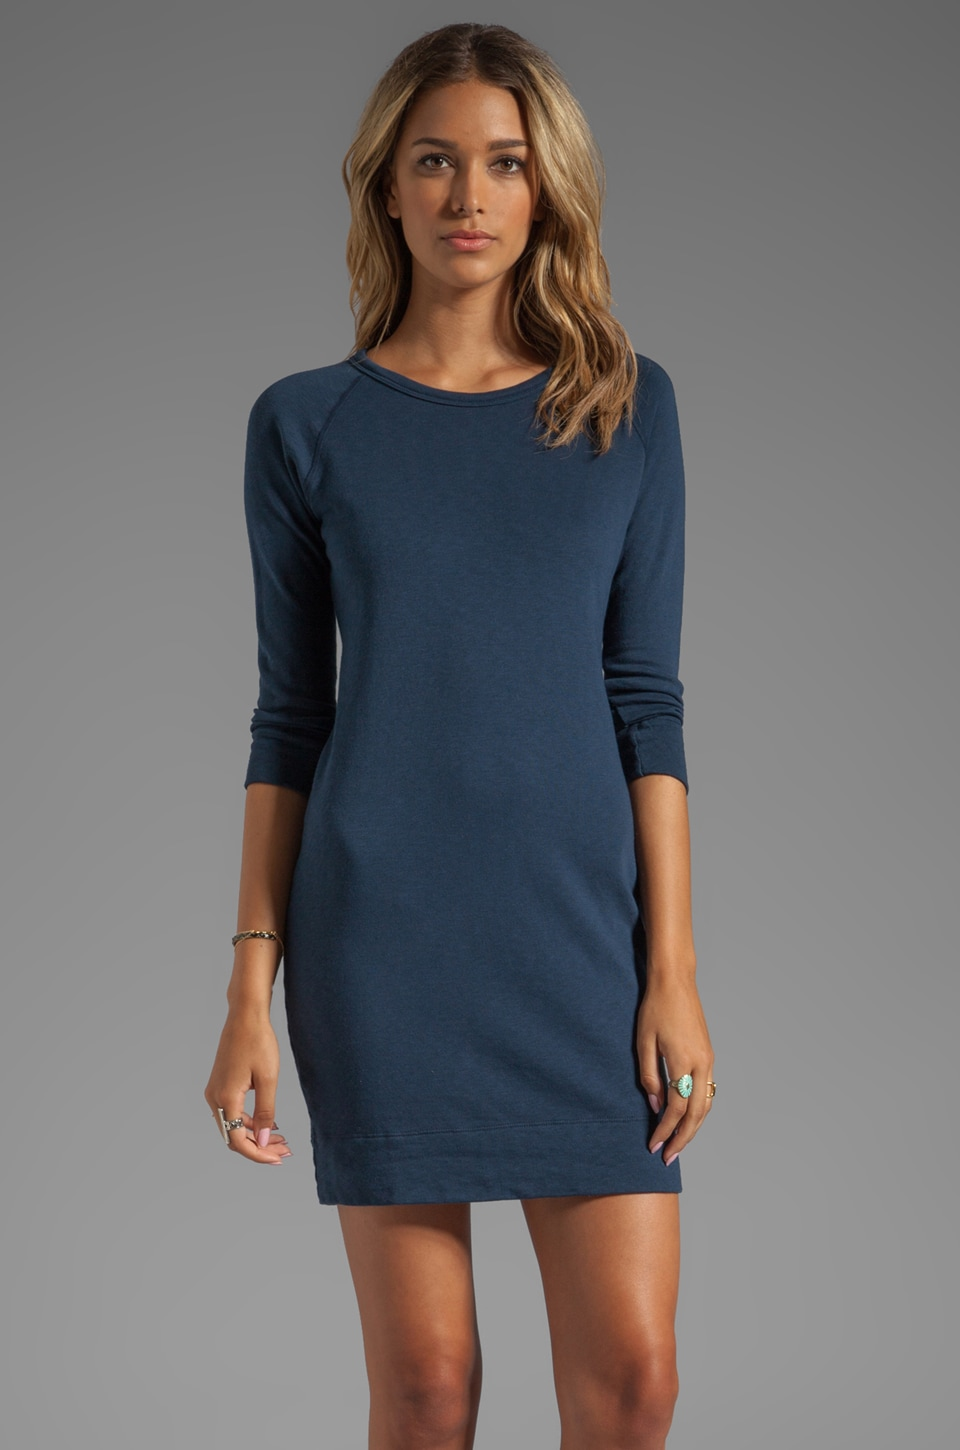 James Perse Raglan Sweatshirt Dress in Imperial